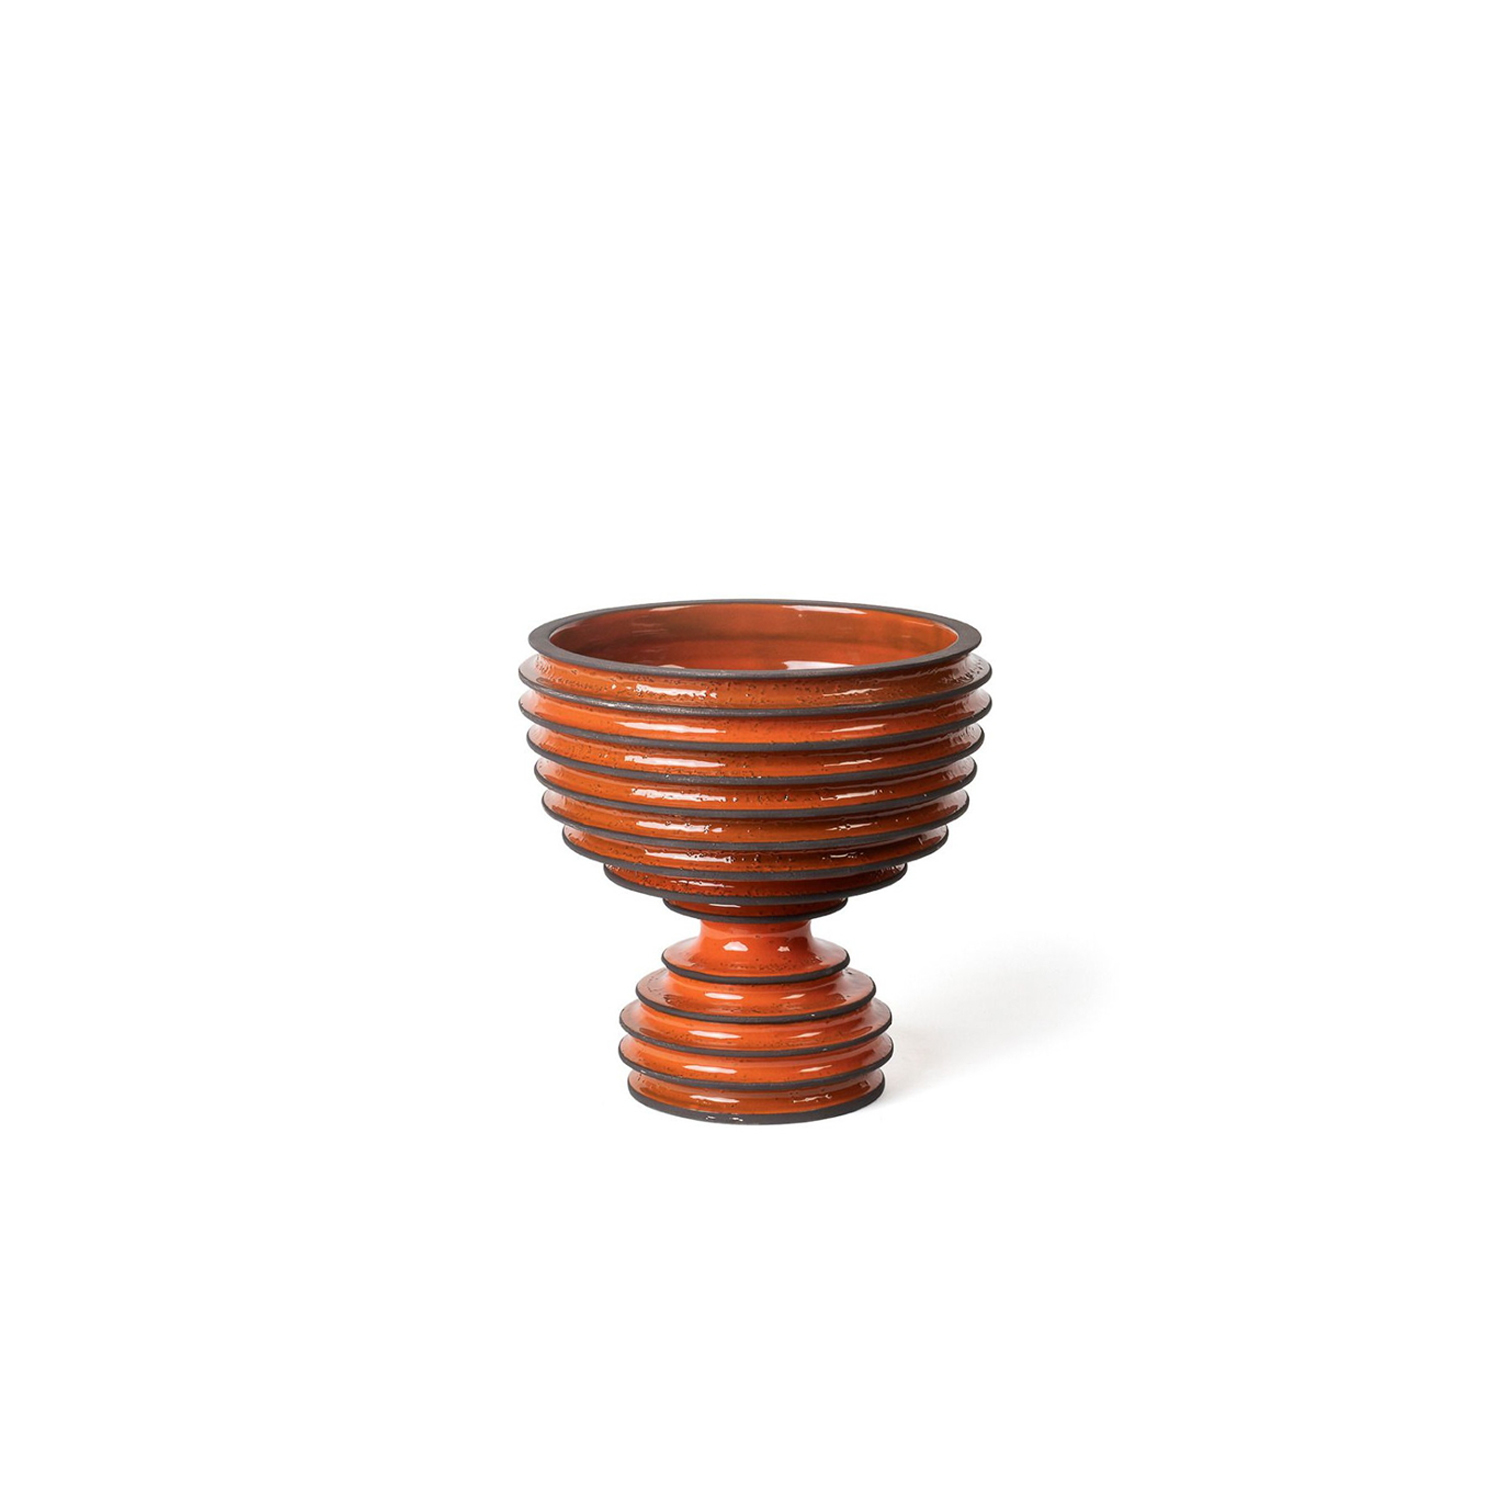 Revolver Orange Goblet - A traditional design dressed in a stylish contemporary suite, this ceramic goblet is part of the exclusive Revolver Collection, showcased at Milan Design Week in 2019. The hourglass-shaped, orange-hued silhouette features a spacious bowl resting on a convex base, both distinguished by a deeply ribbed texture accented by brown edges.